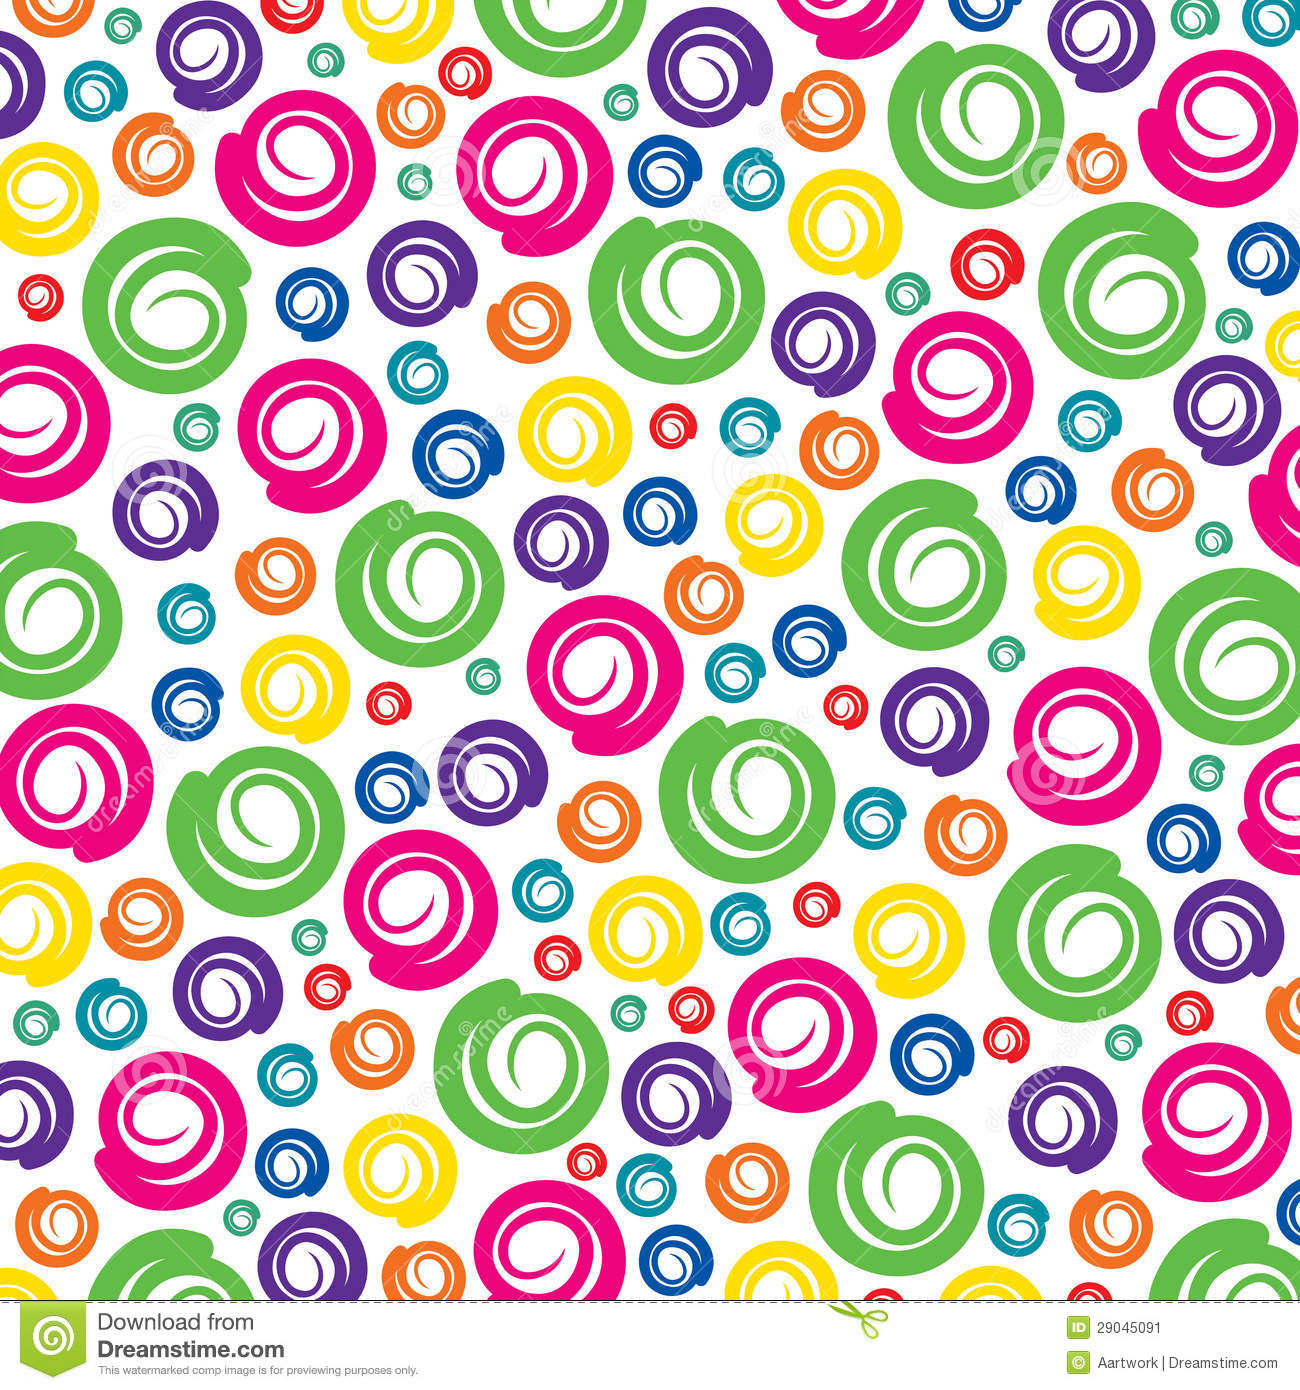 Swirl background pattern - photo#2